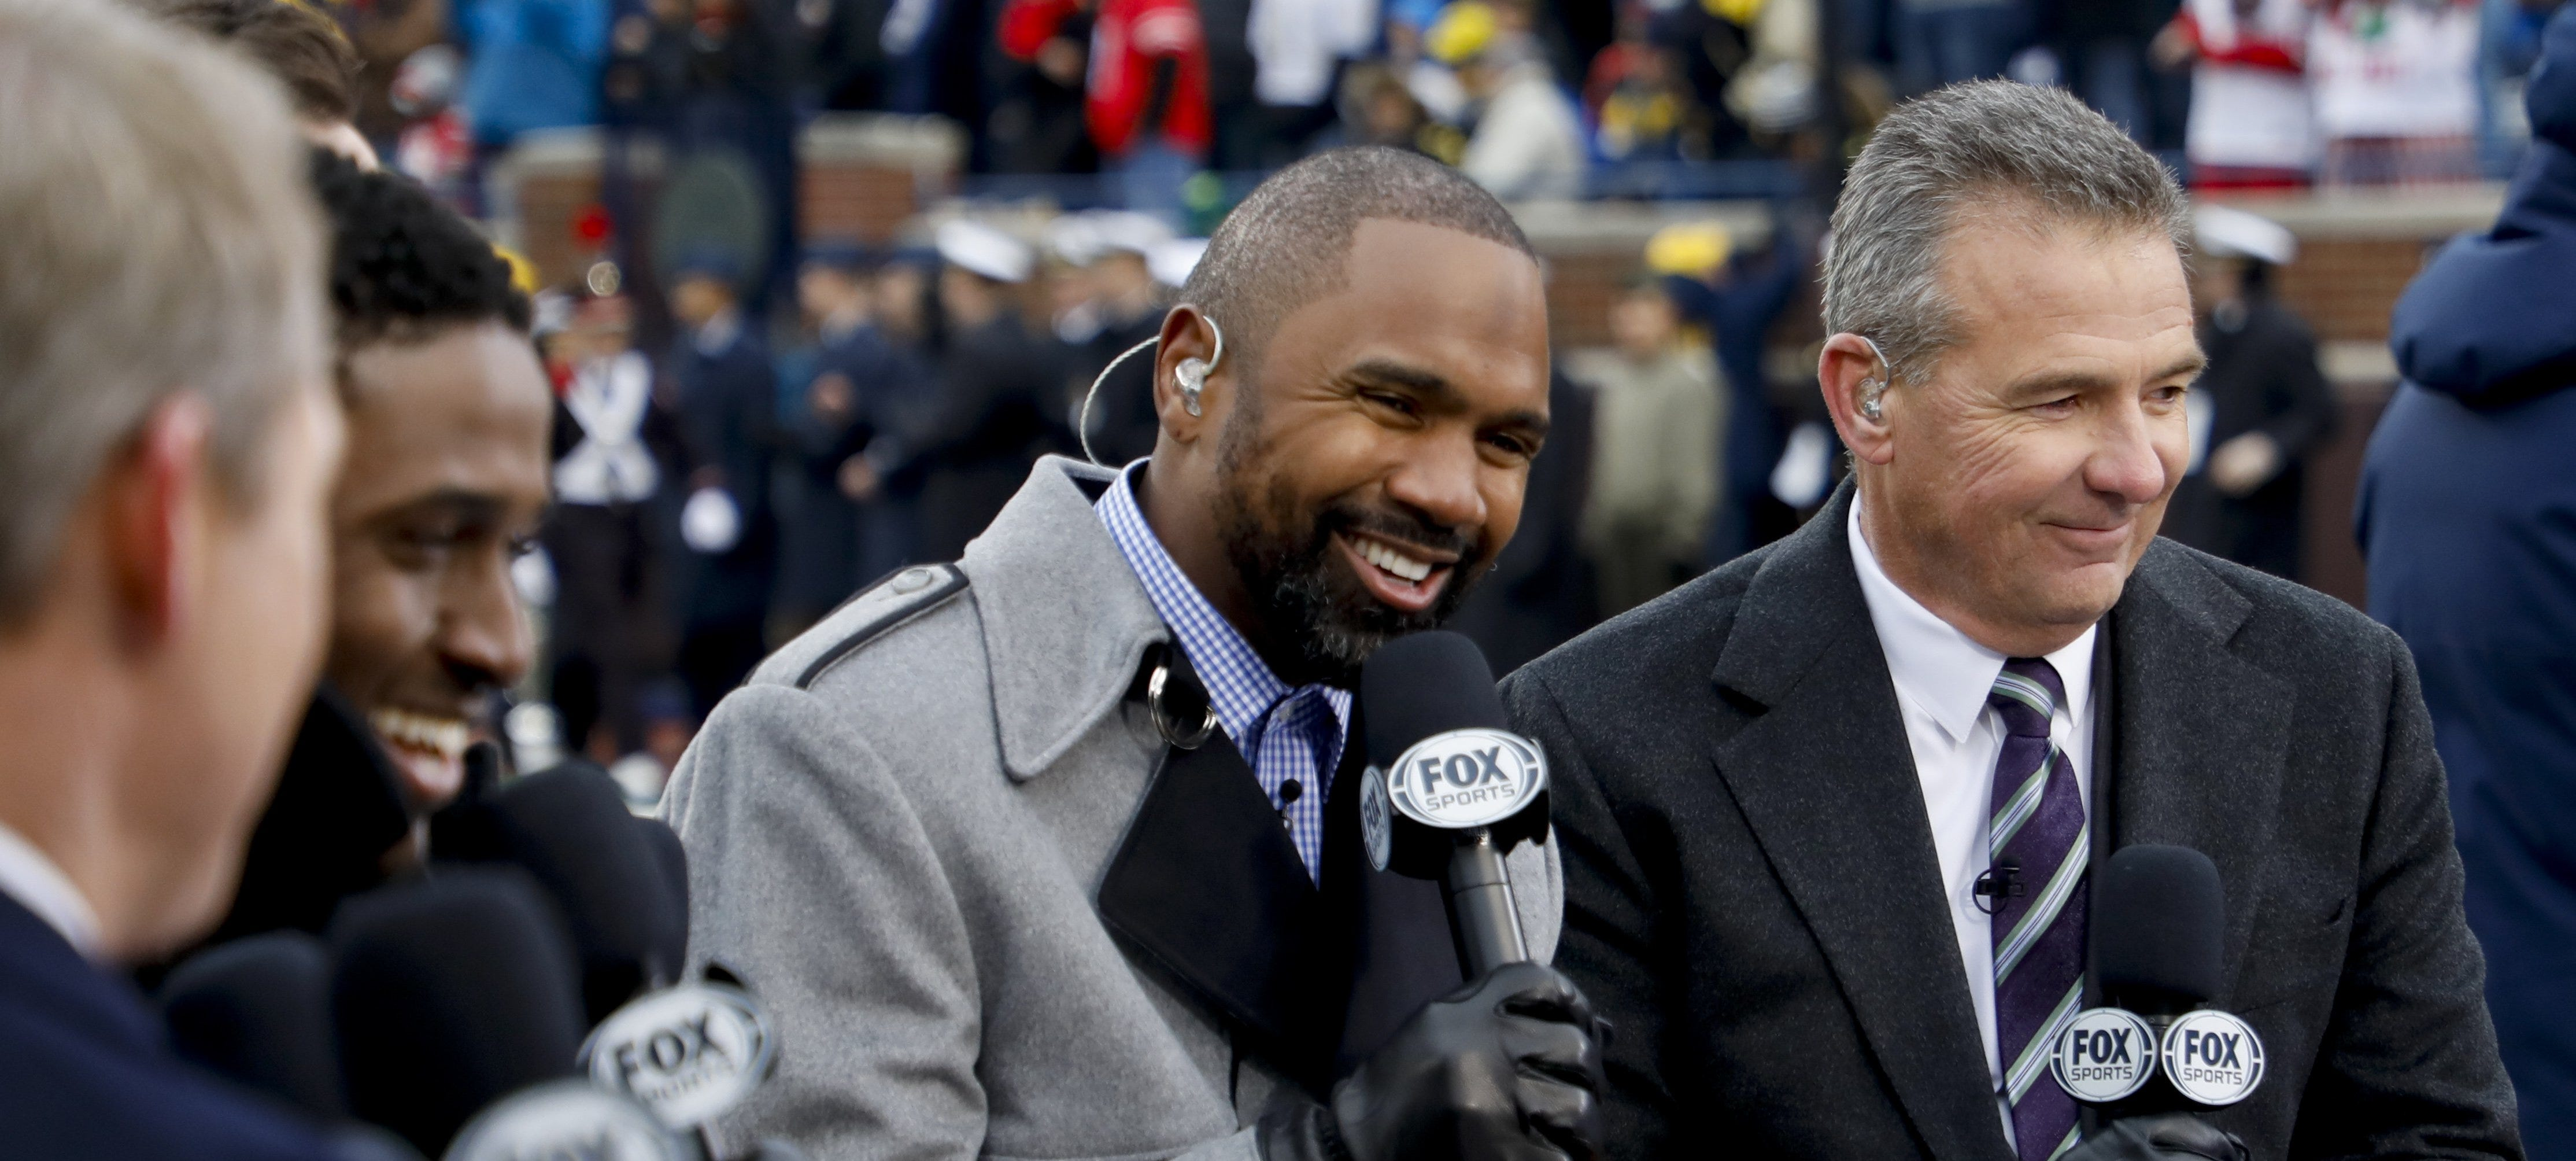 """Charles Woodson, left, and Urban Meyer, right, chat during a broadcast of Fox Sports' """"Big Noon Kickoff"""" before the Michigan and Ohio State game on Nov. 30, 2019 at Michigan Stadium in Ann Arbor, Michigan."""